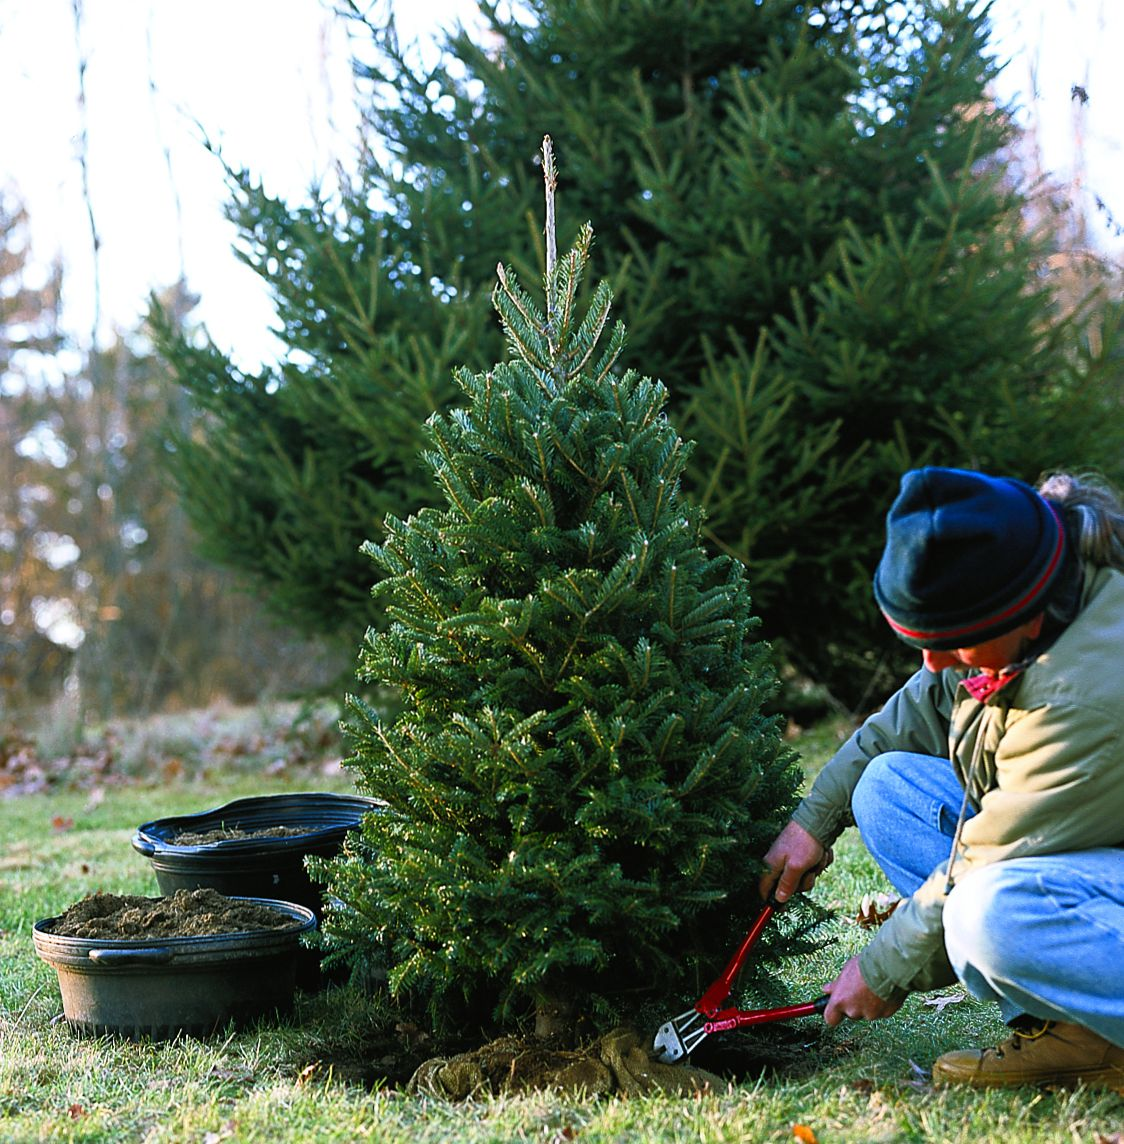 Person cutting away wire basket around the root ball of the Christmas tree plant to prepare to place it in the hole.